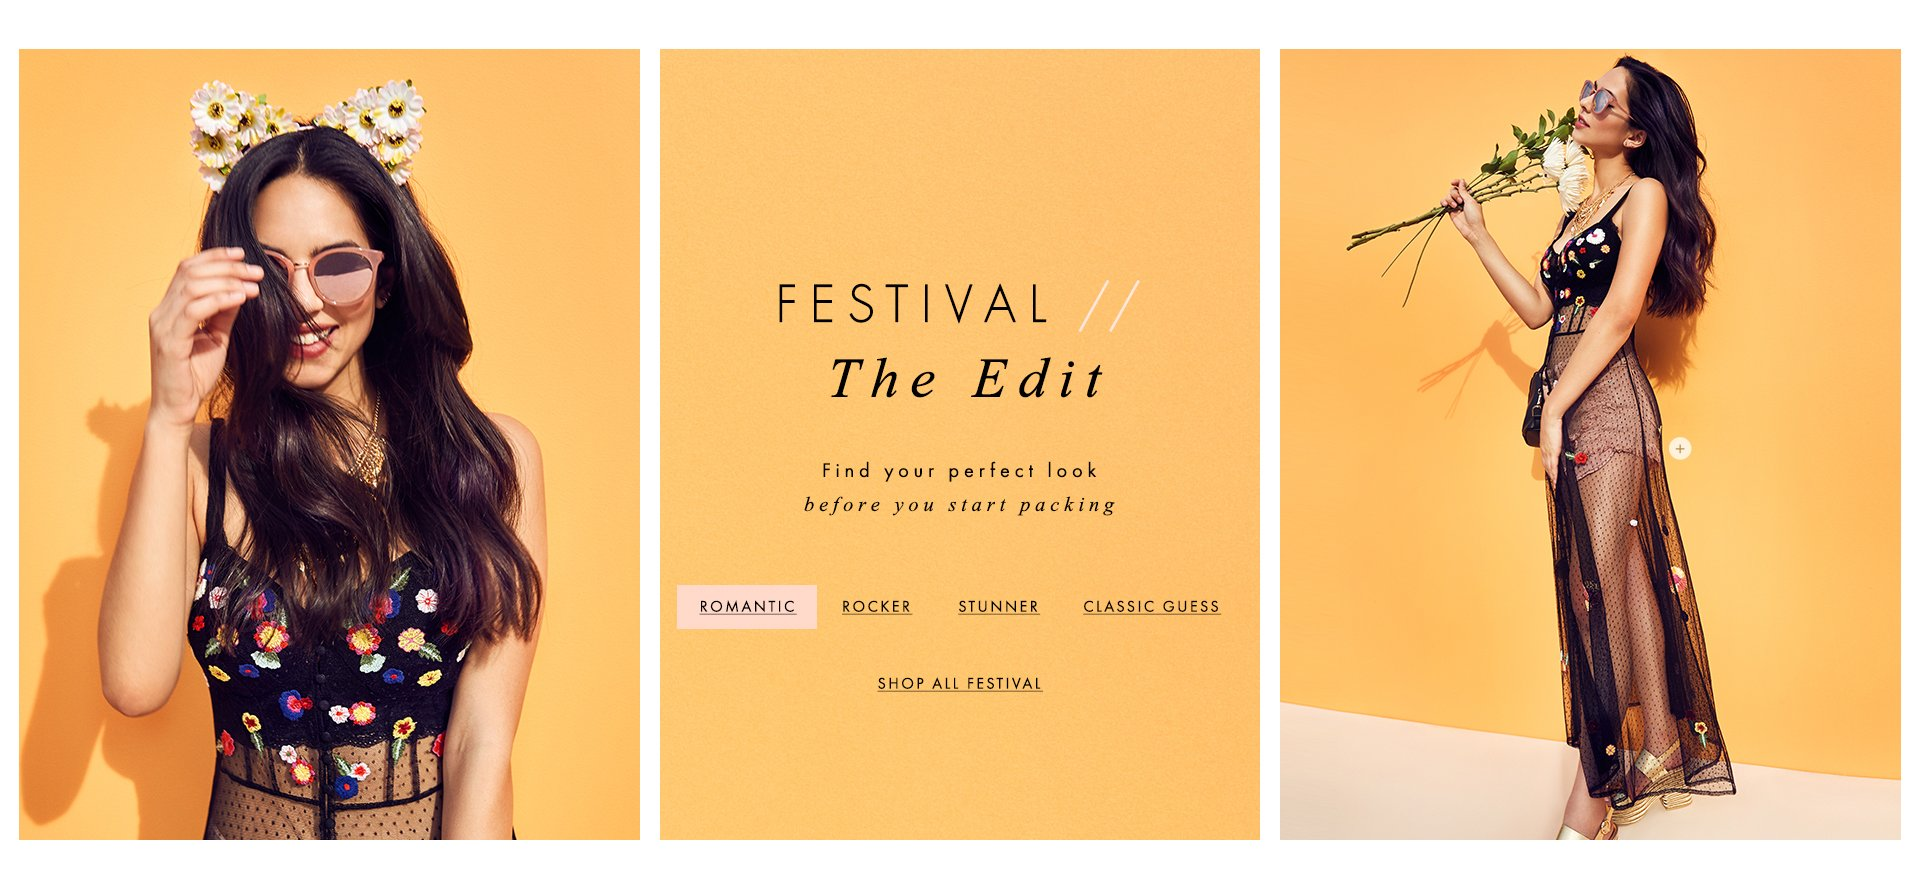 GUESS Festival: The Edit